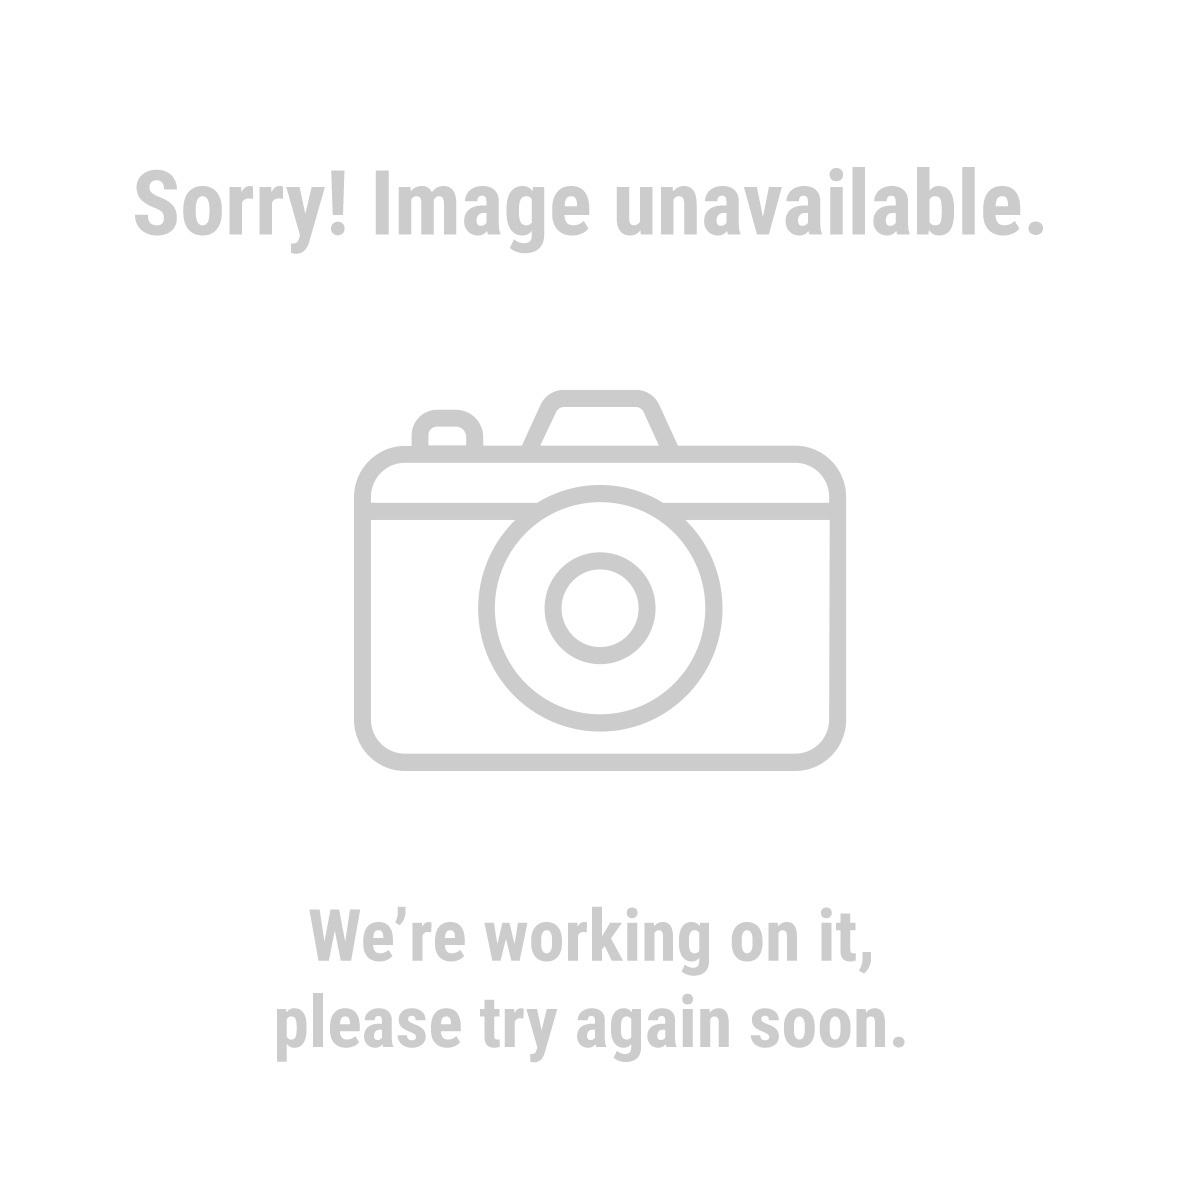 Vanguard 63125 125 Volt, 15 Amp Female Plug Connector